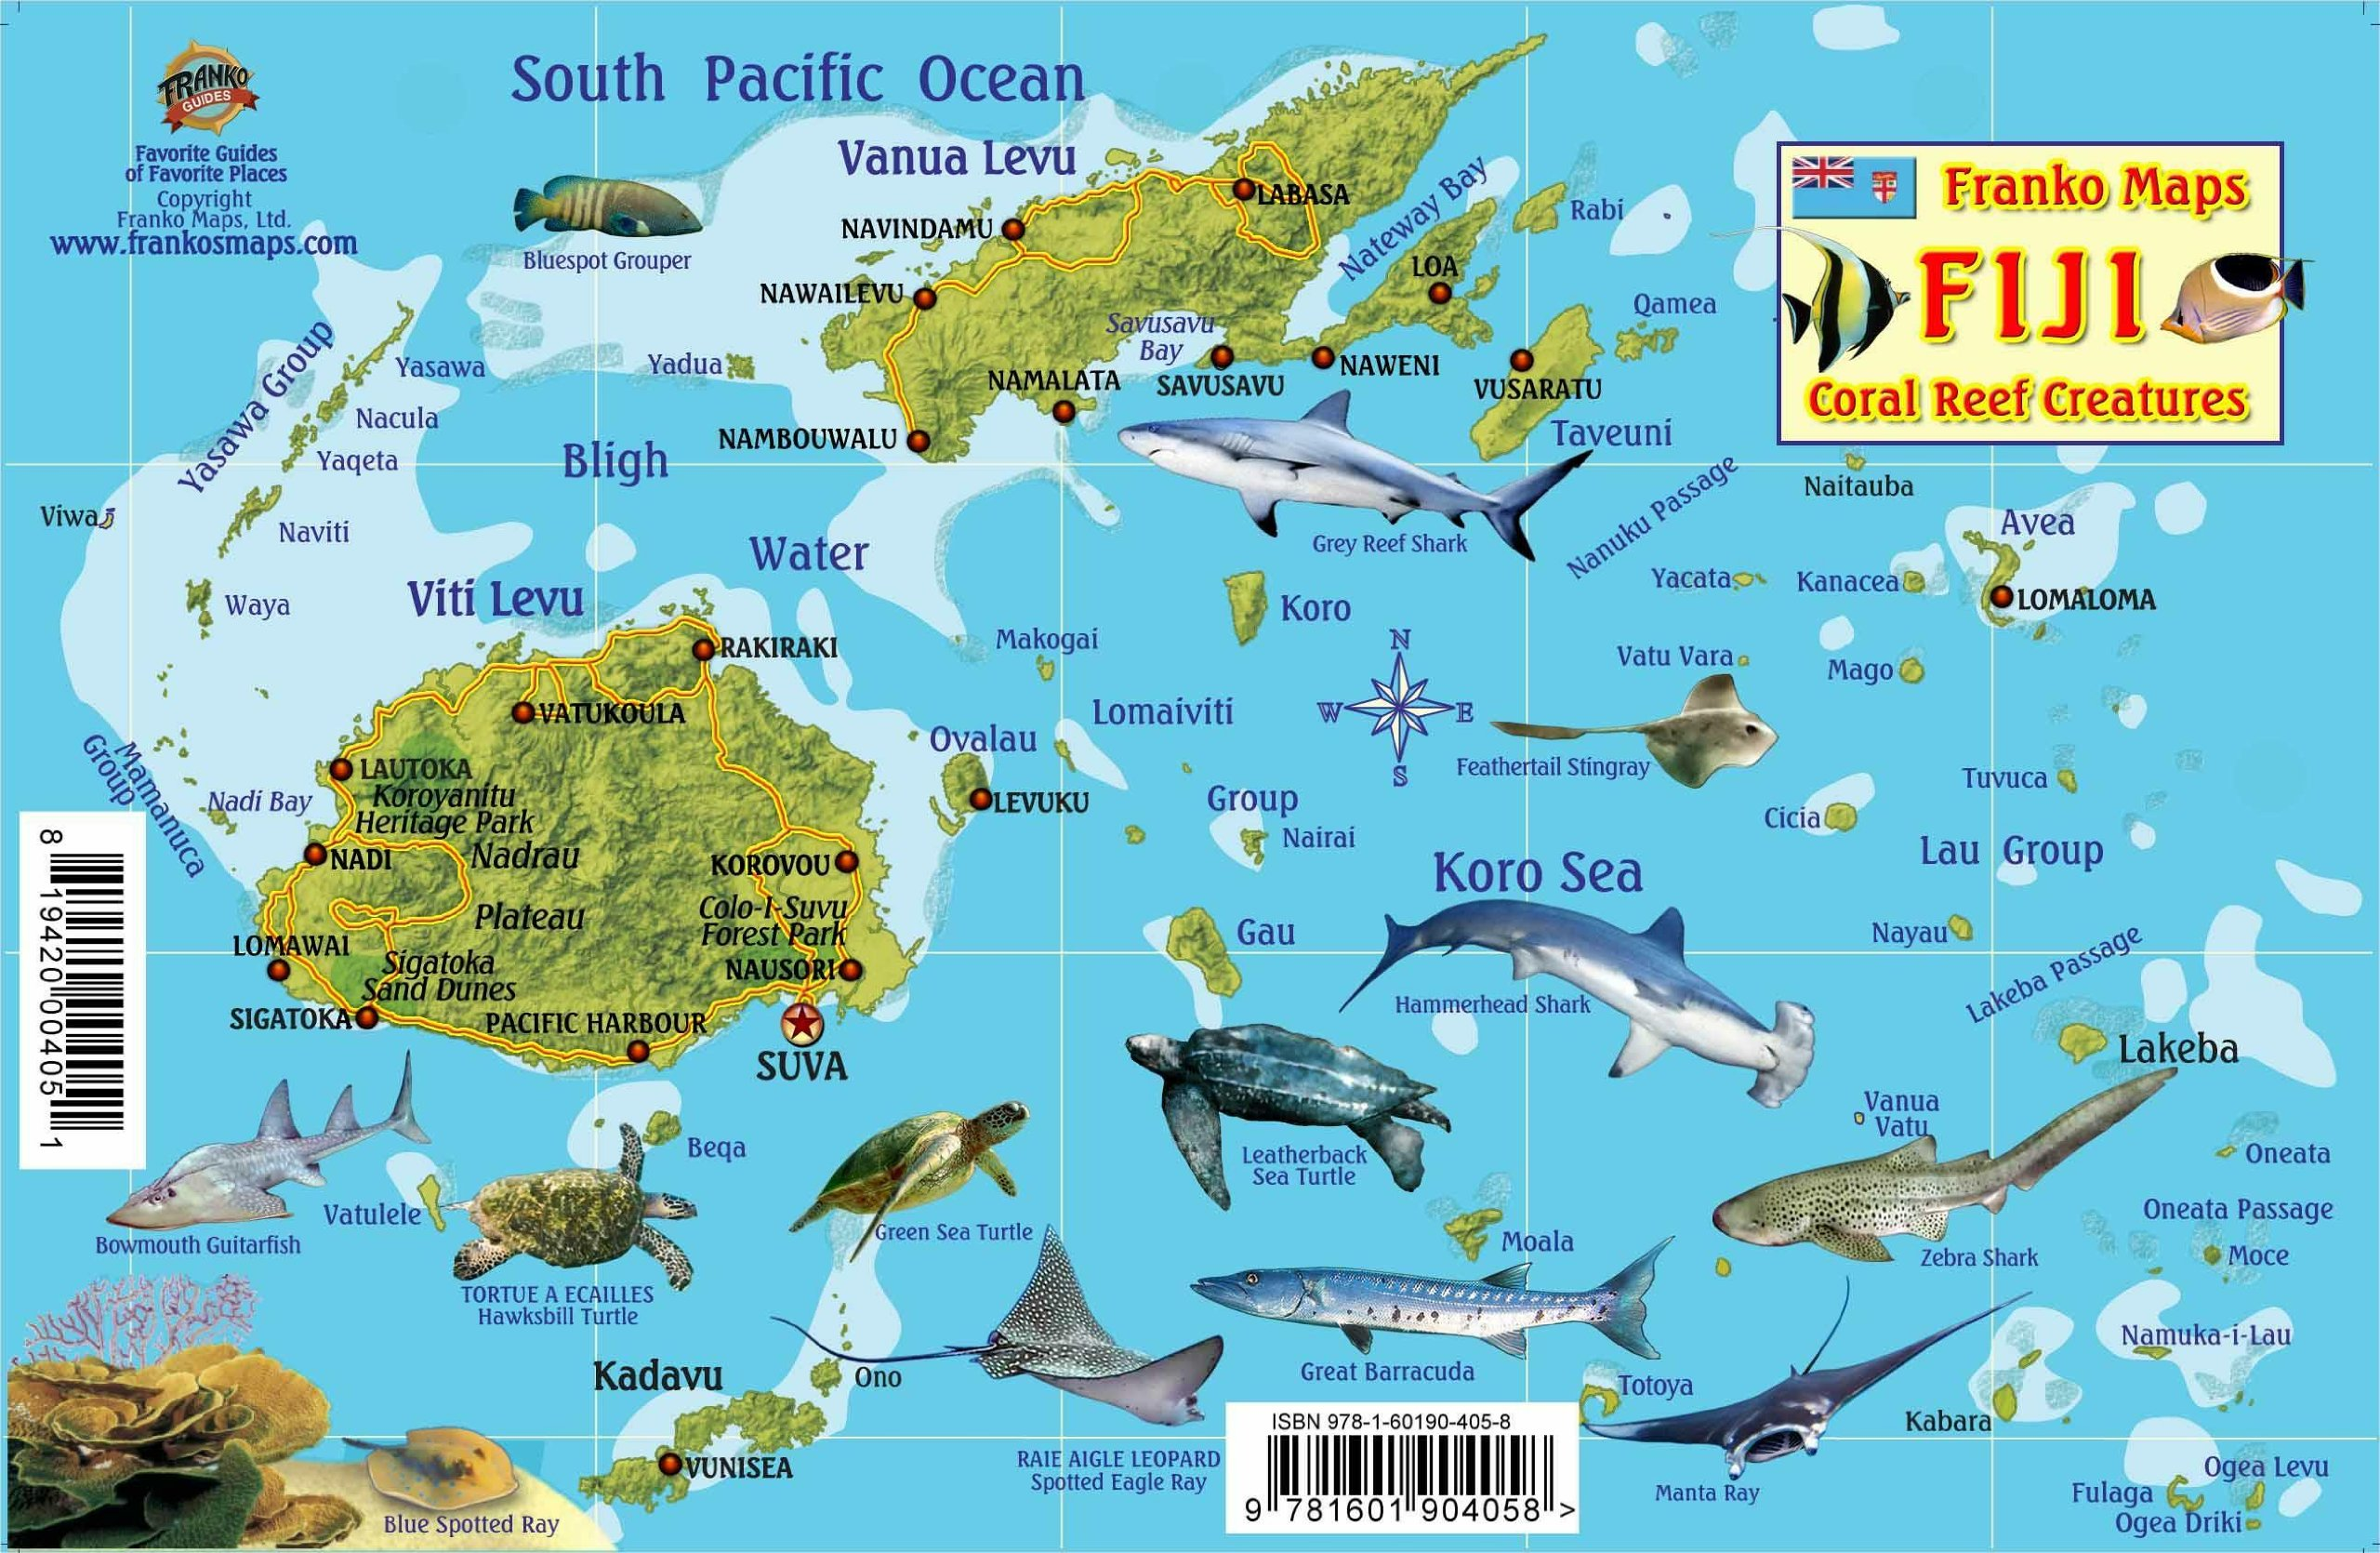 Fiji map reef creatures guide franko maps laminated fish card fiji map reef creatures guide franko maps laminated fish card fiji map hd gumiabroncs Gallery